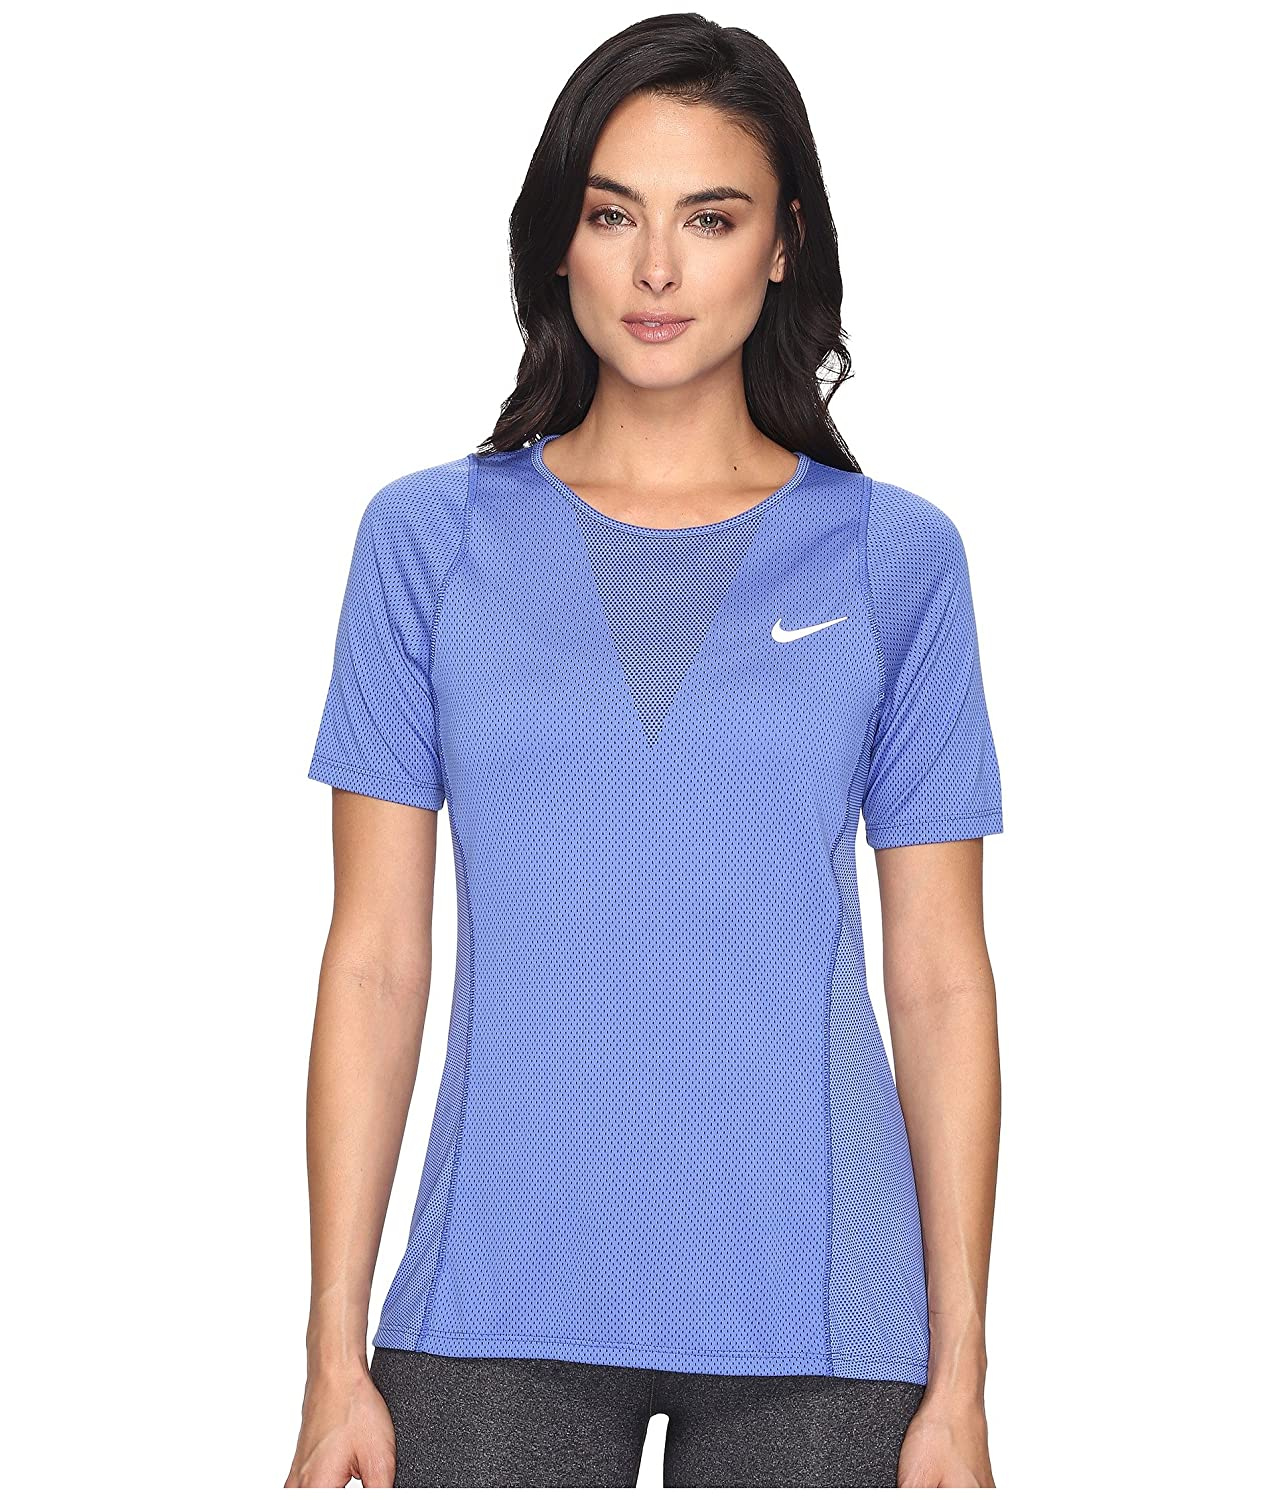 [ナイキ] Nike レディース Zonal Cooling Relay Short Sleeve Running Top トップス [並行輸入品] XL Comet Blue/Reflective Silver B01NB180JT